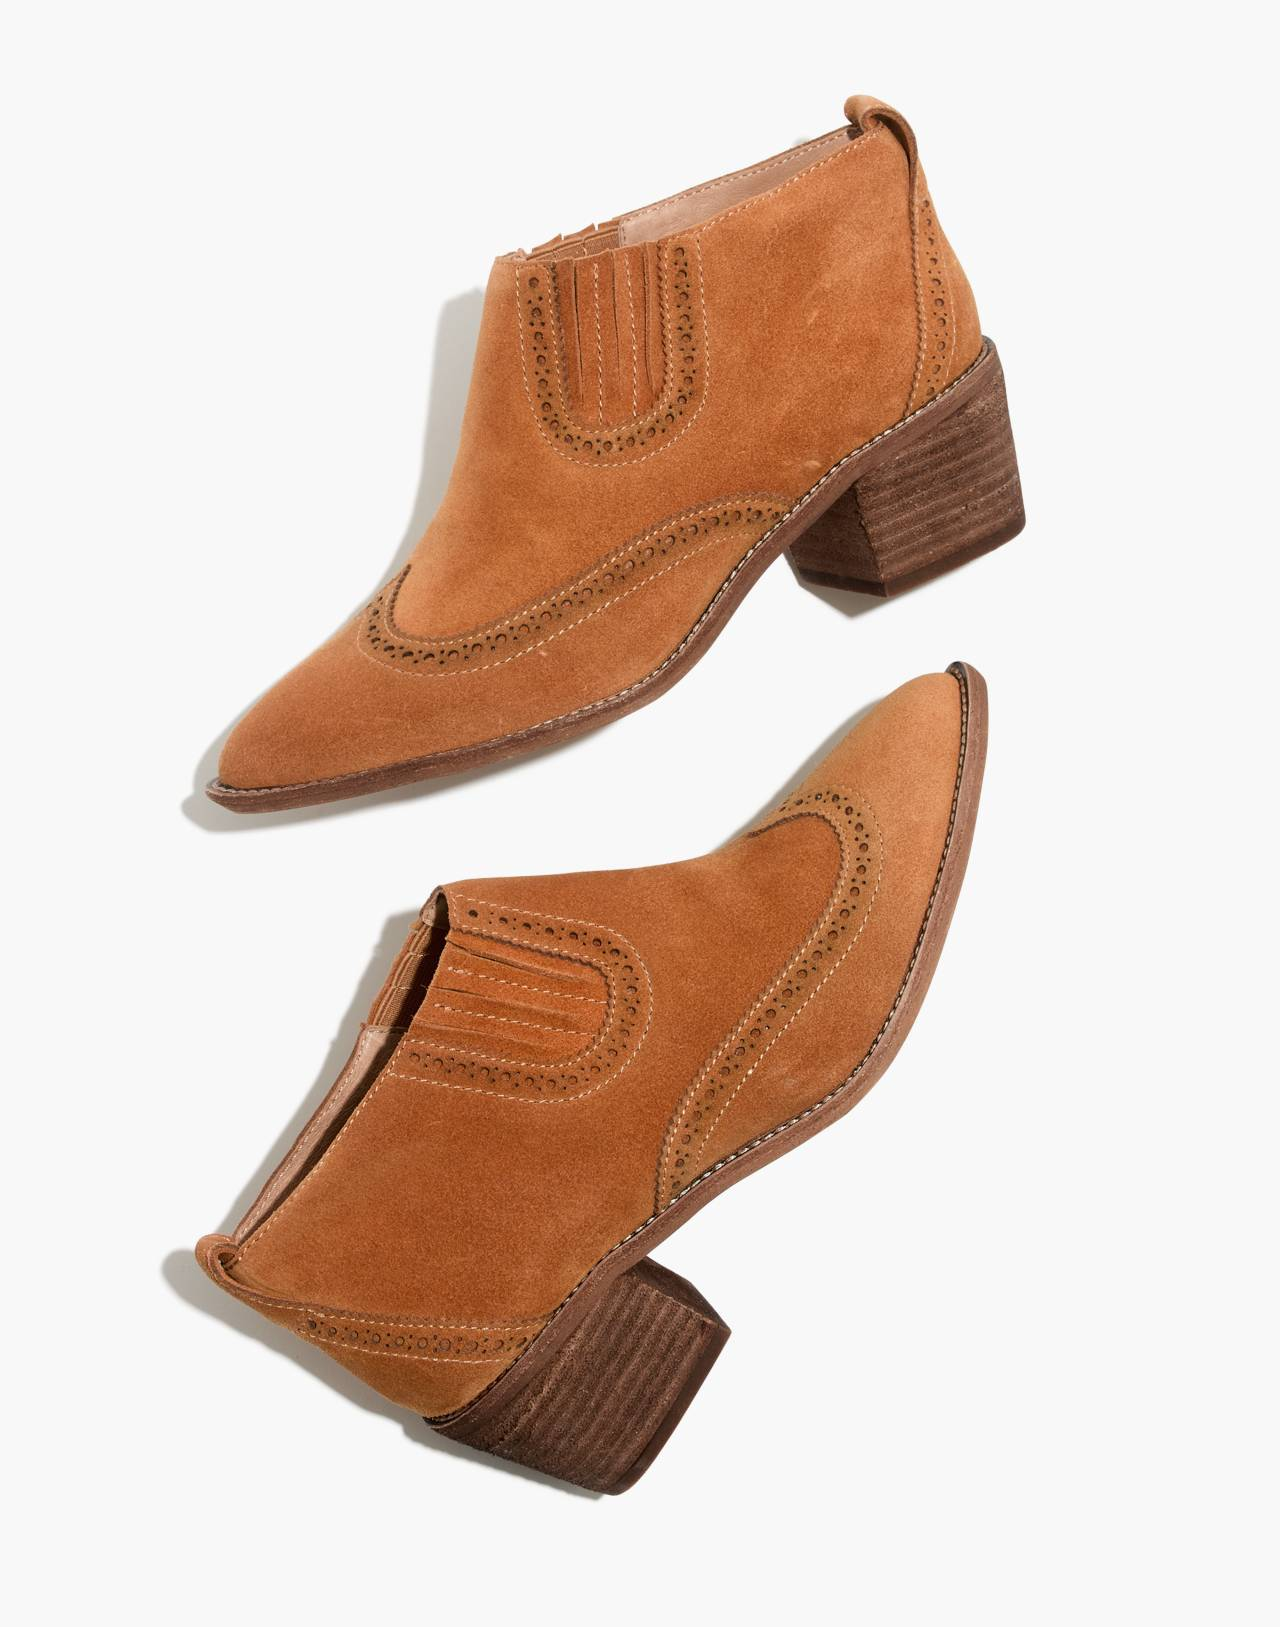 The Grayson Brogue Chelsea Boot in amber brown image 1